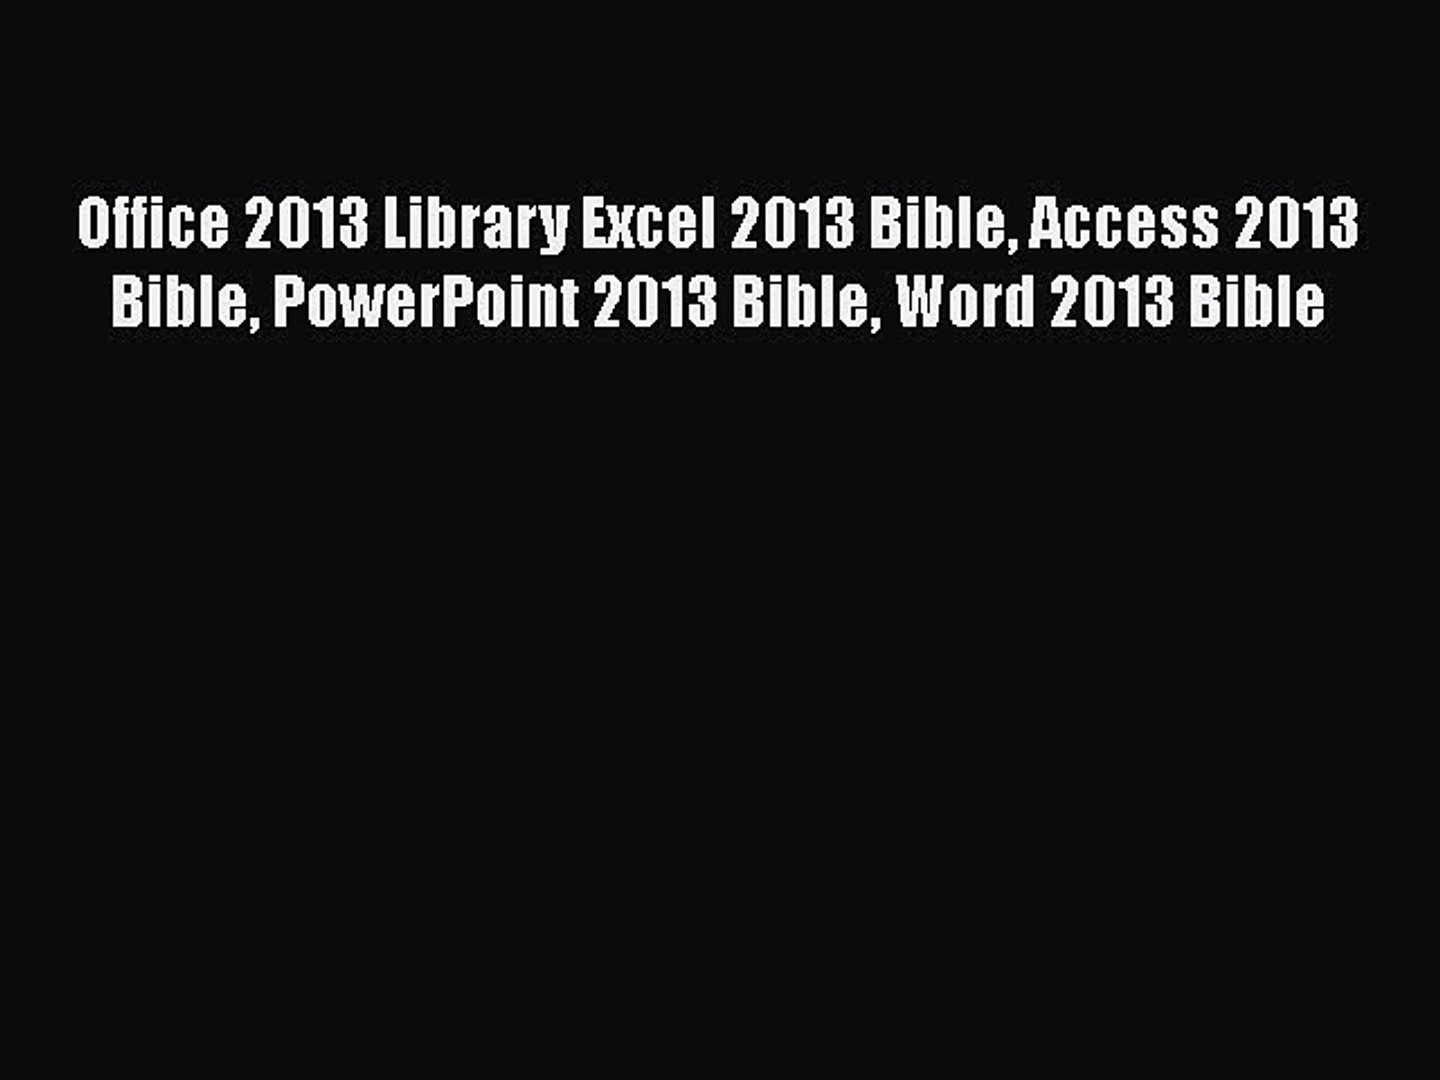 [PDF] Office 2013 Library Excel 2013 Bible Access 2013 Bible PowerPoint 2013 Bible Word 2013